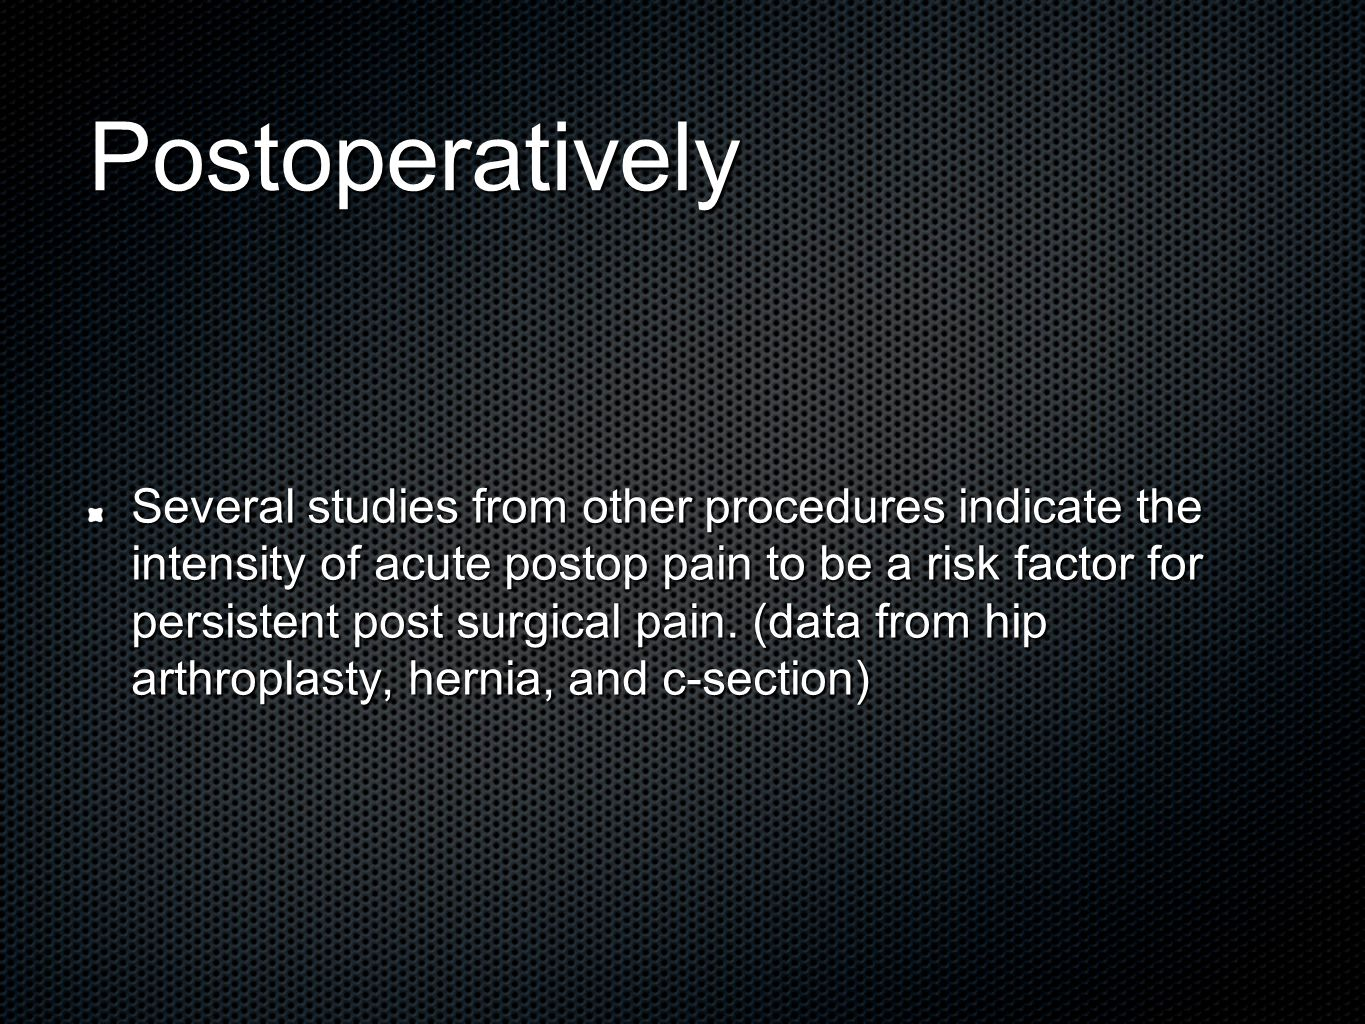 Postoperatively Several studies from other procedures indicate the intensity of acute postop pain to be a risk factor for persistent post surgical pain.